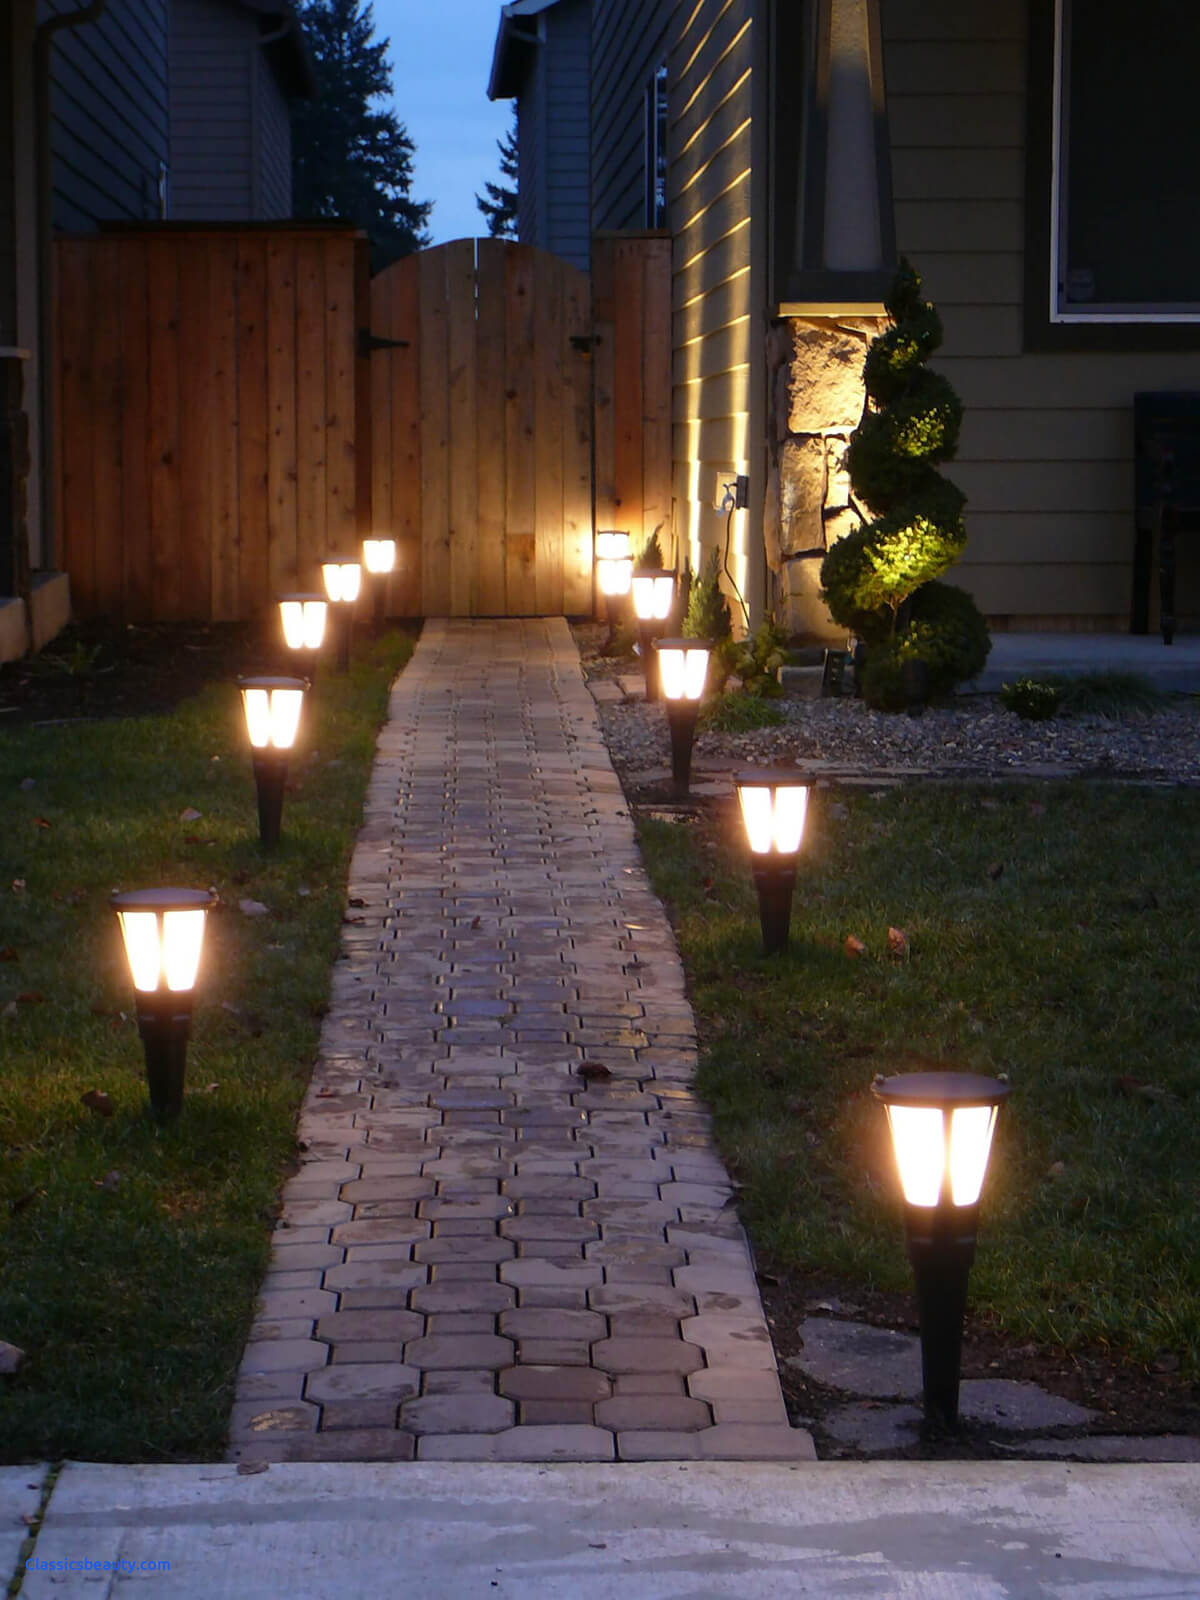 Enjoy The Night View of Your Yard with These 5 Outdoor Lighting Ideas